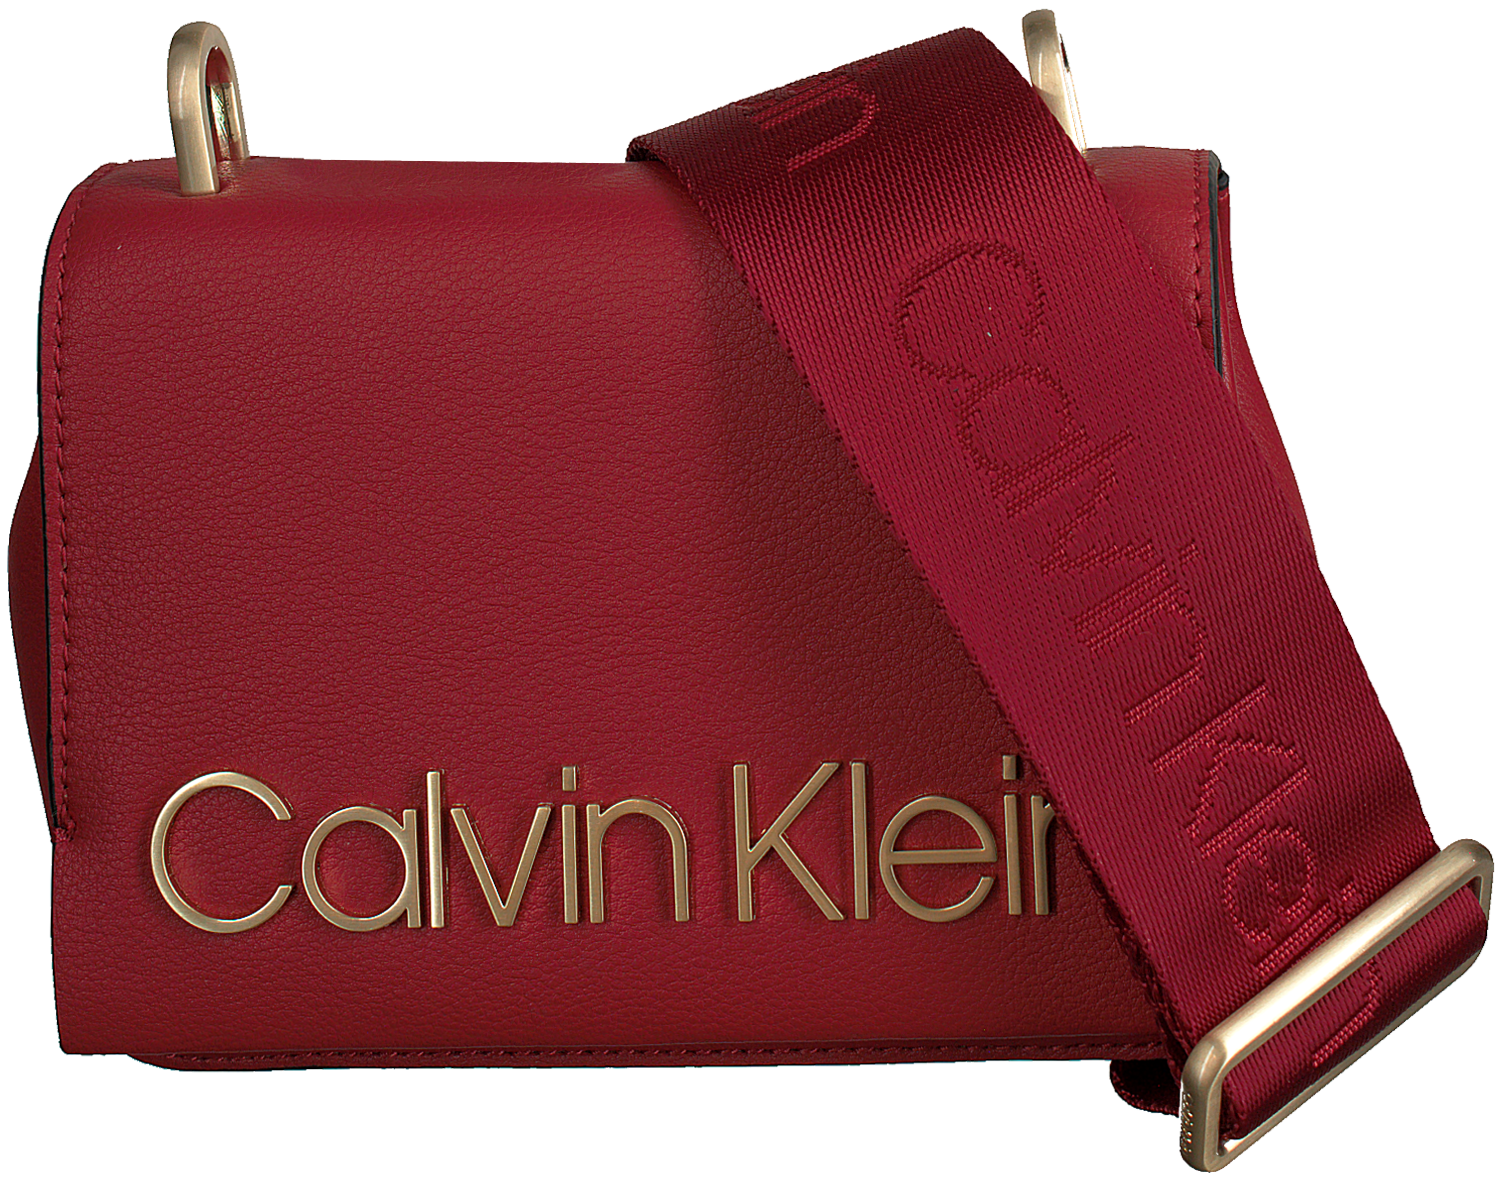 Rode CALVIN KLEIN Schoudertas CK CANDY SMALL CROSSBODY Omoda